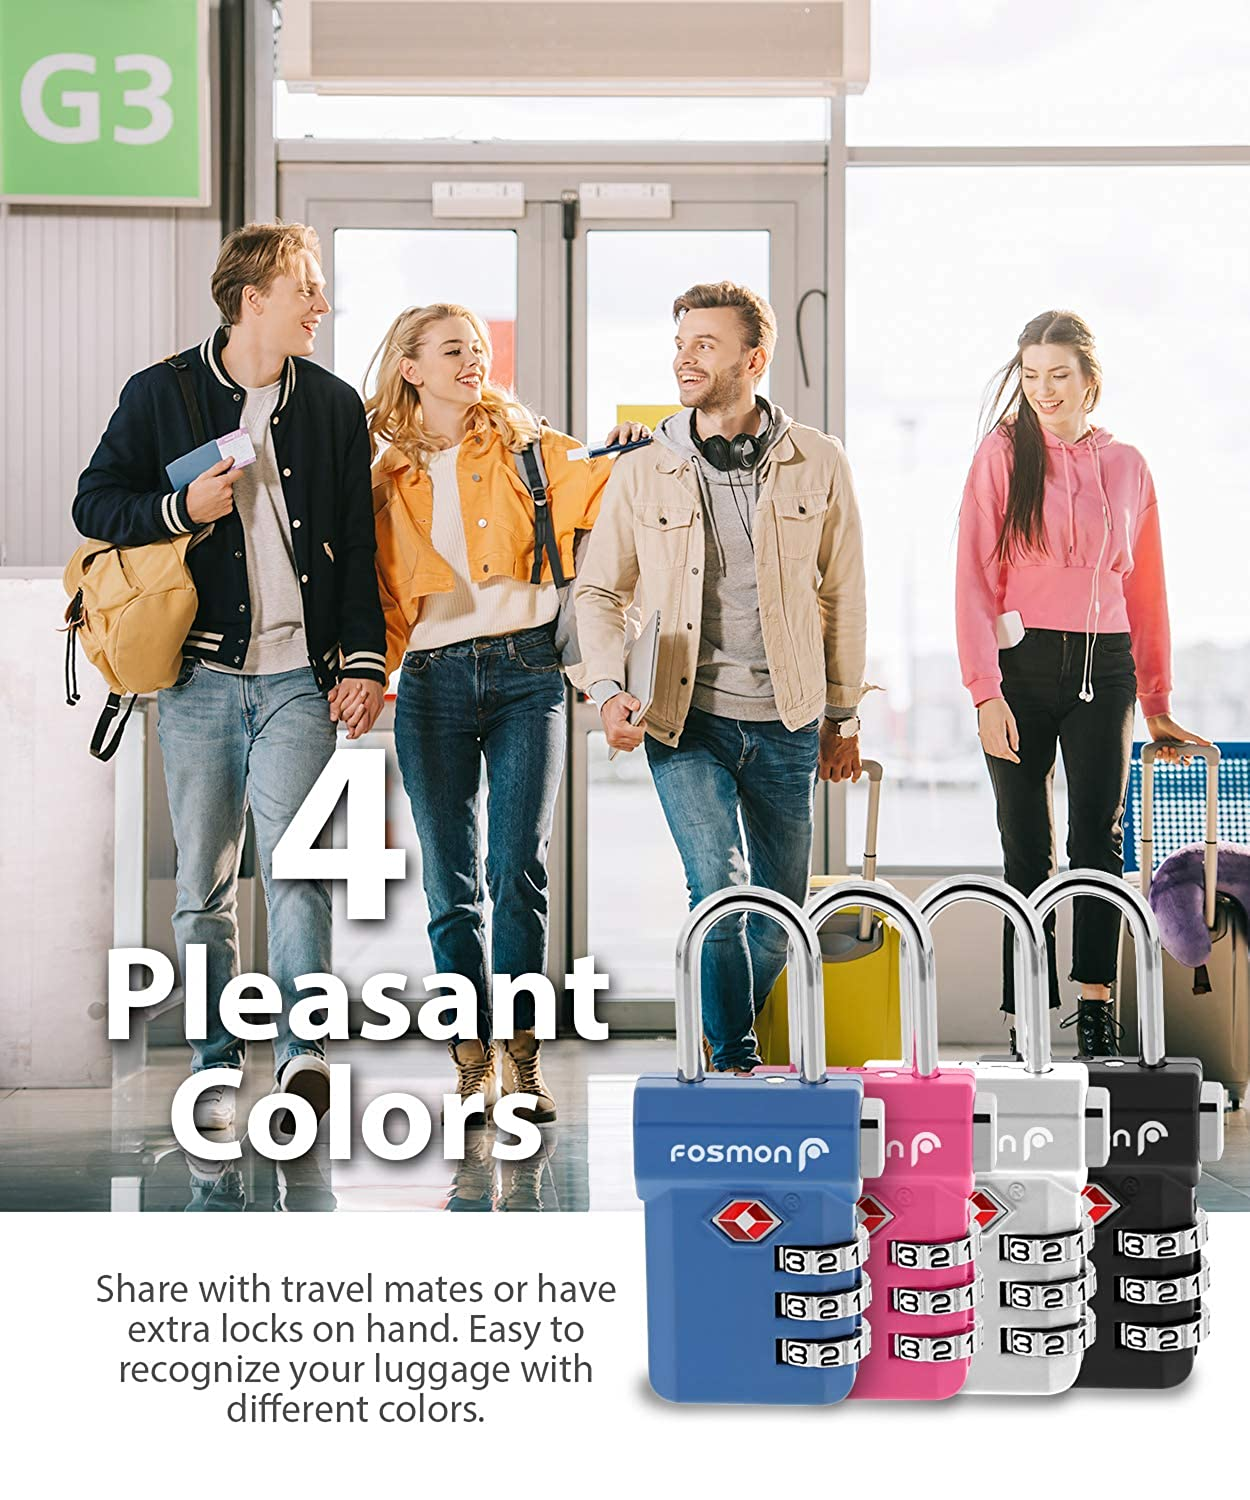 Black Fosmon TSA Approved Luggage Locks, Pink 4 Pack Suit Case and Luggage Open Alert Indicator 3 Digit Combination Padlock Codes with Alloy Body and Release Button for Travel Bag Silver Blue